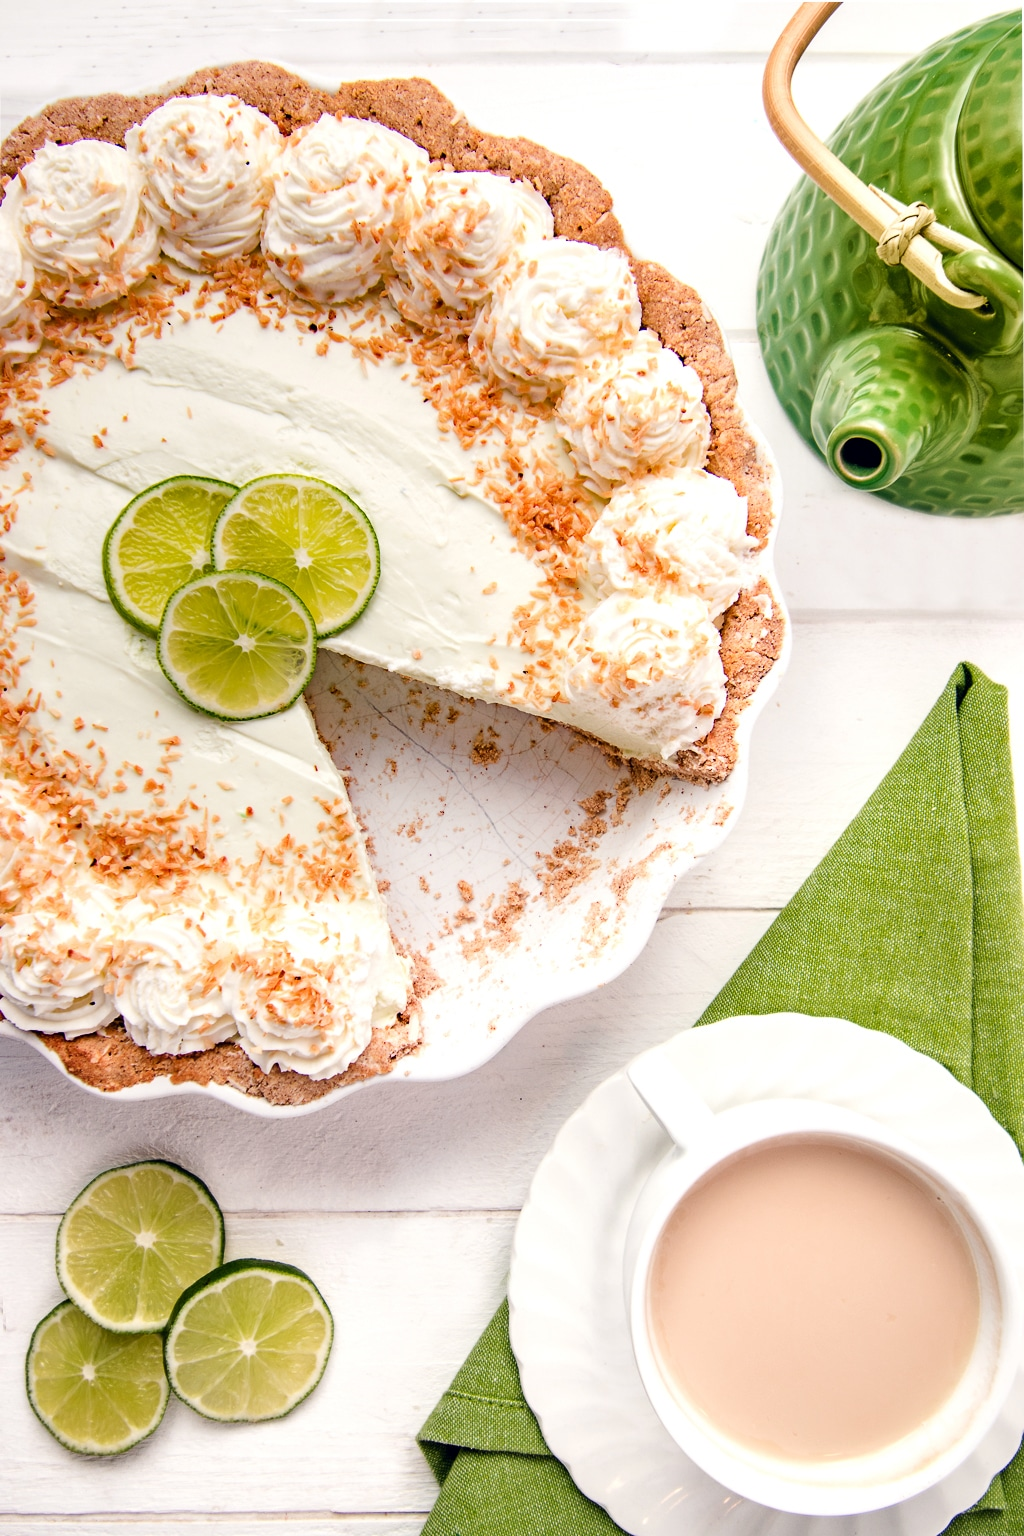 A no bake key lime pie with a slice removed on a white background with green napkins, sliced limes and bright green tea pot